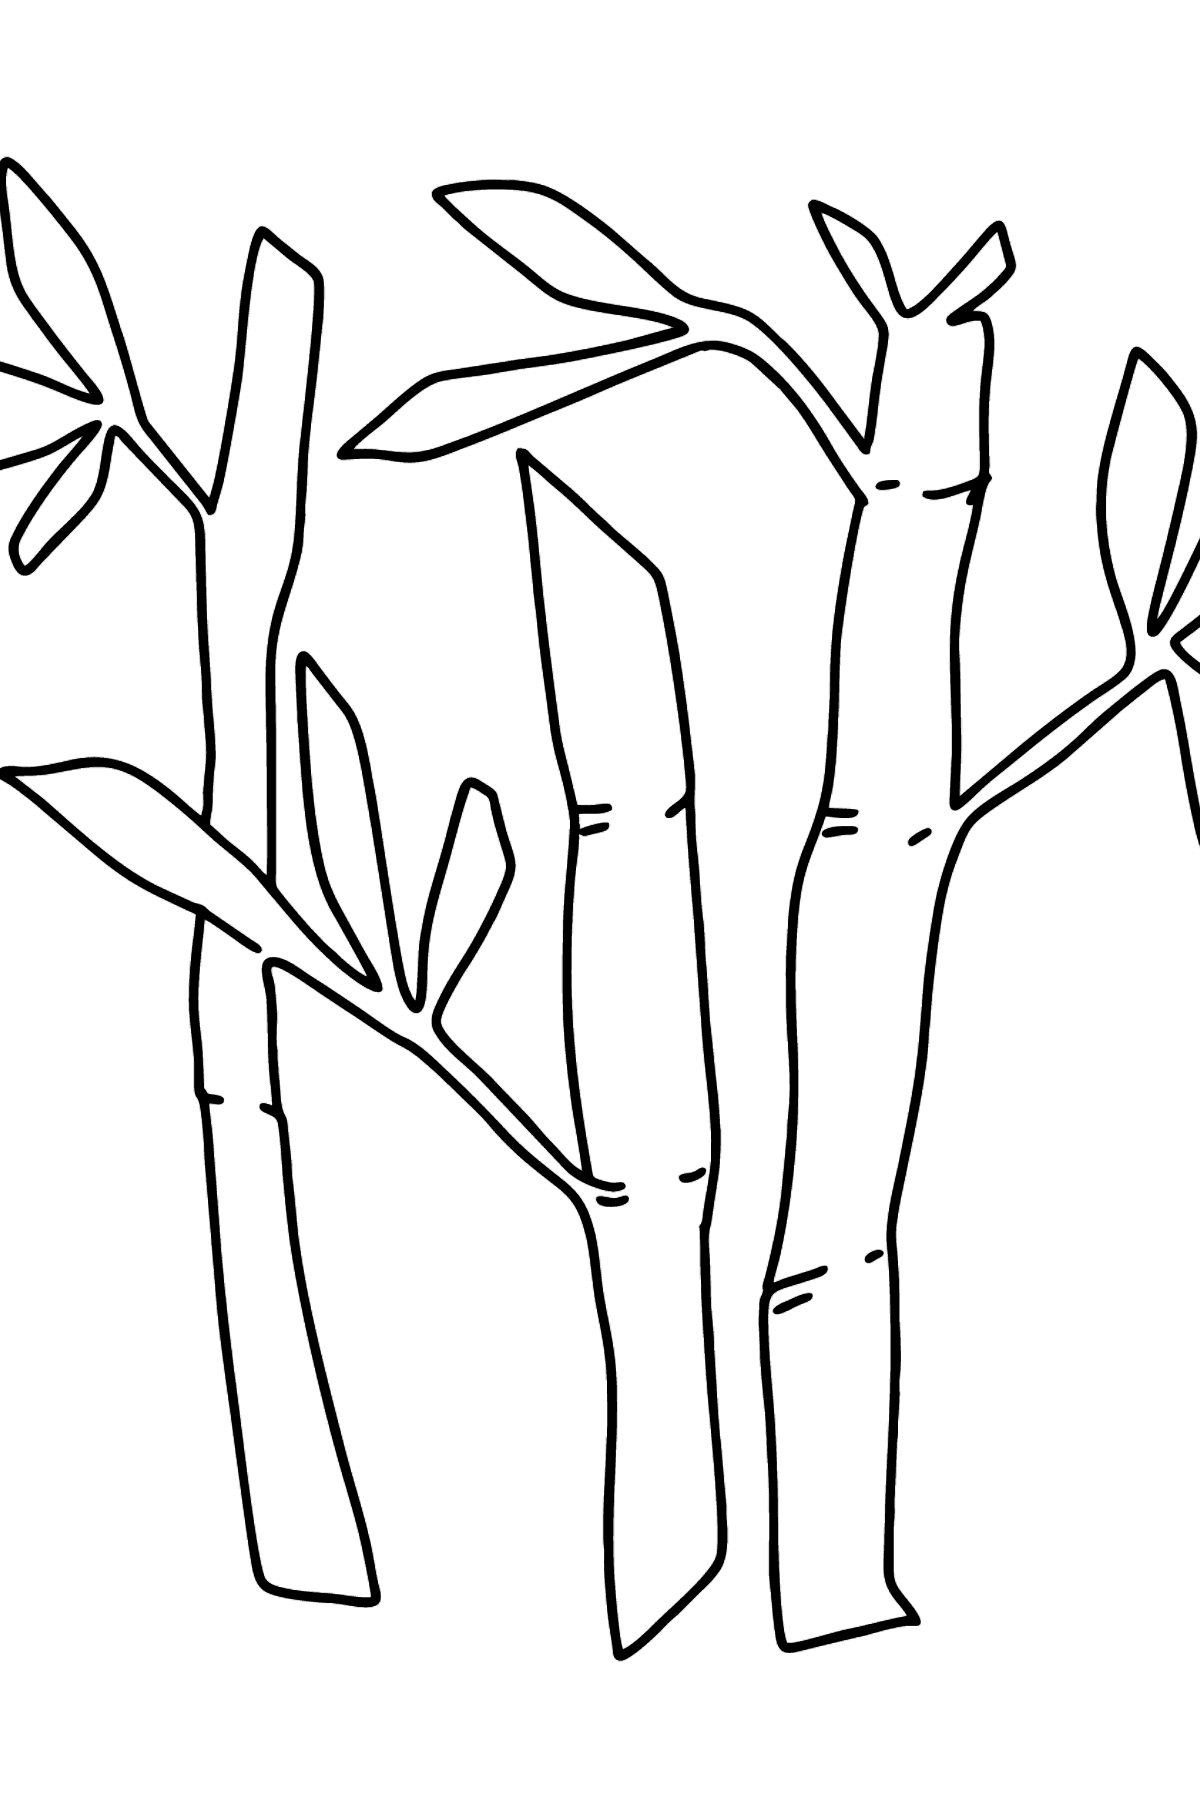 Bamboo coloring page - simple - Coloring Pages for Kids